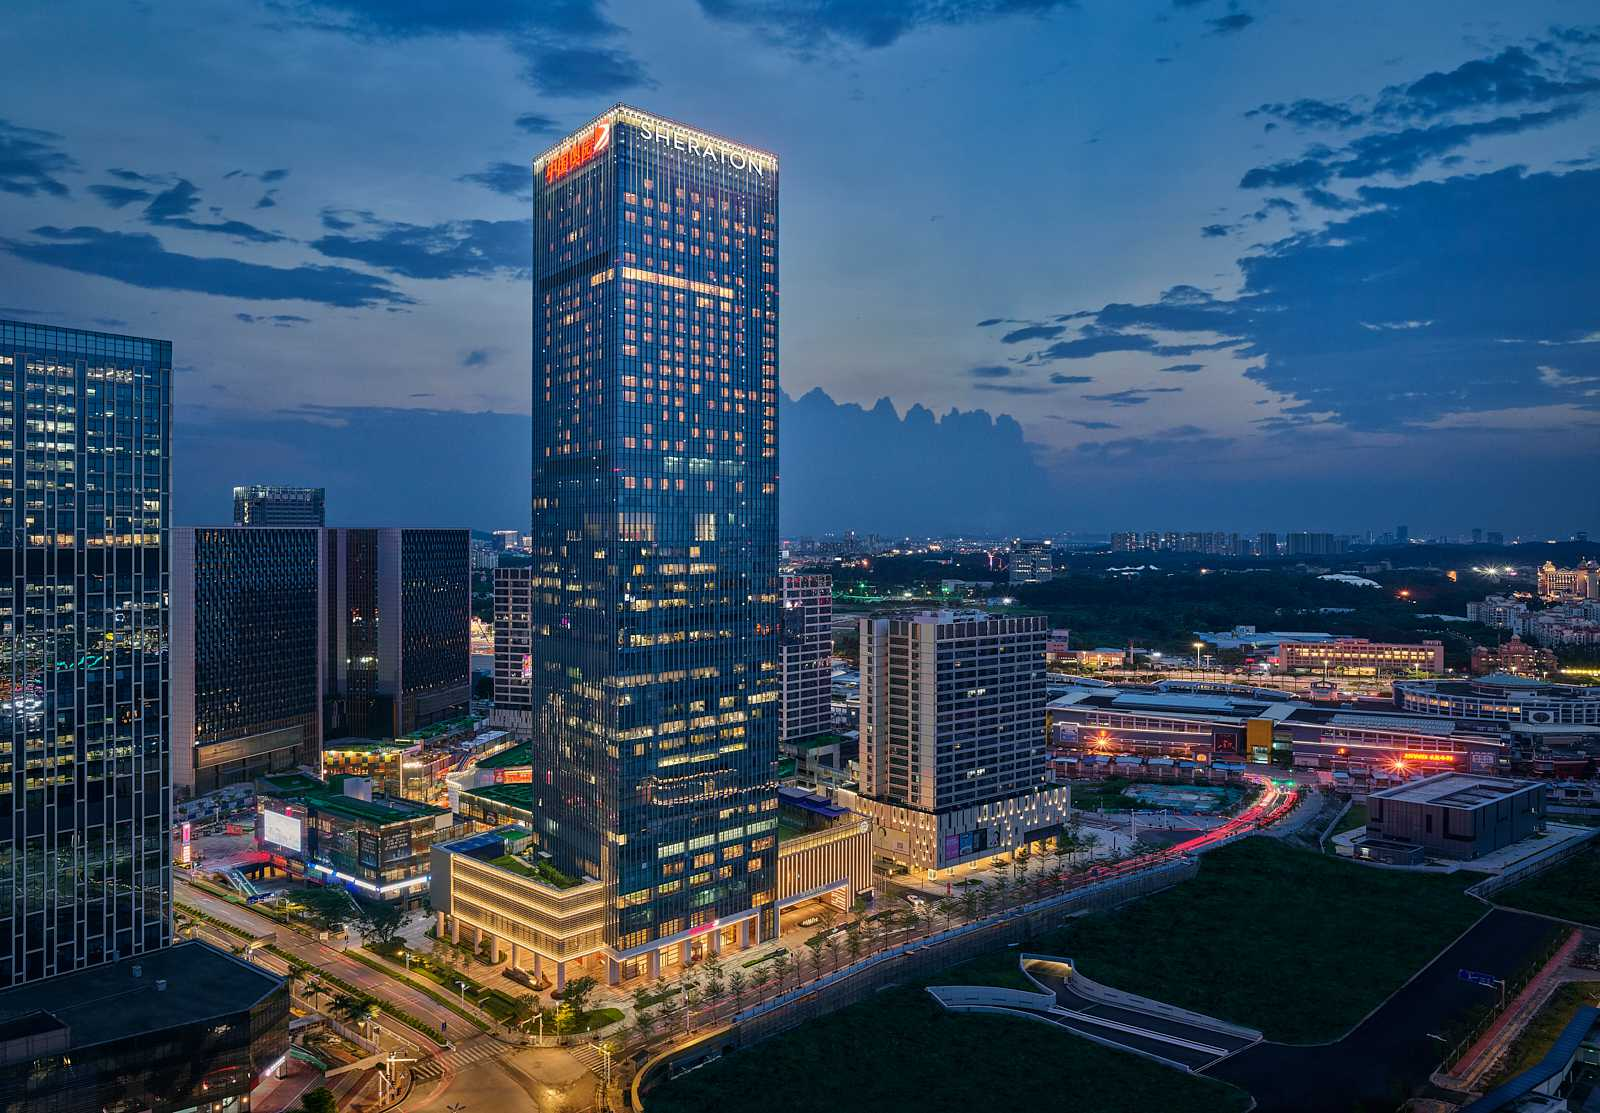 Panyu District Welcomes 1st International Hotel Sheraton Guangzhou Panyu